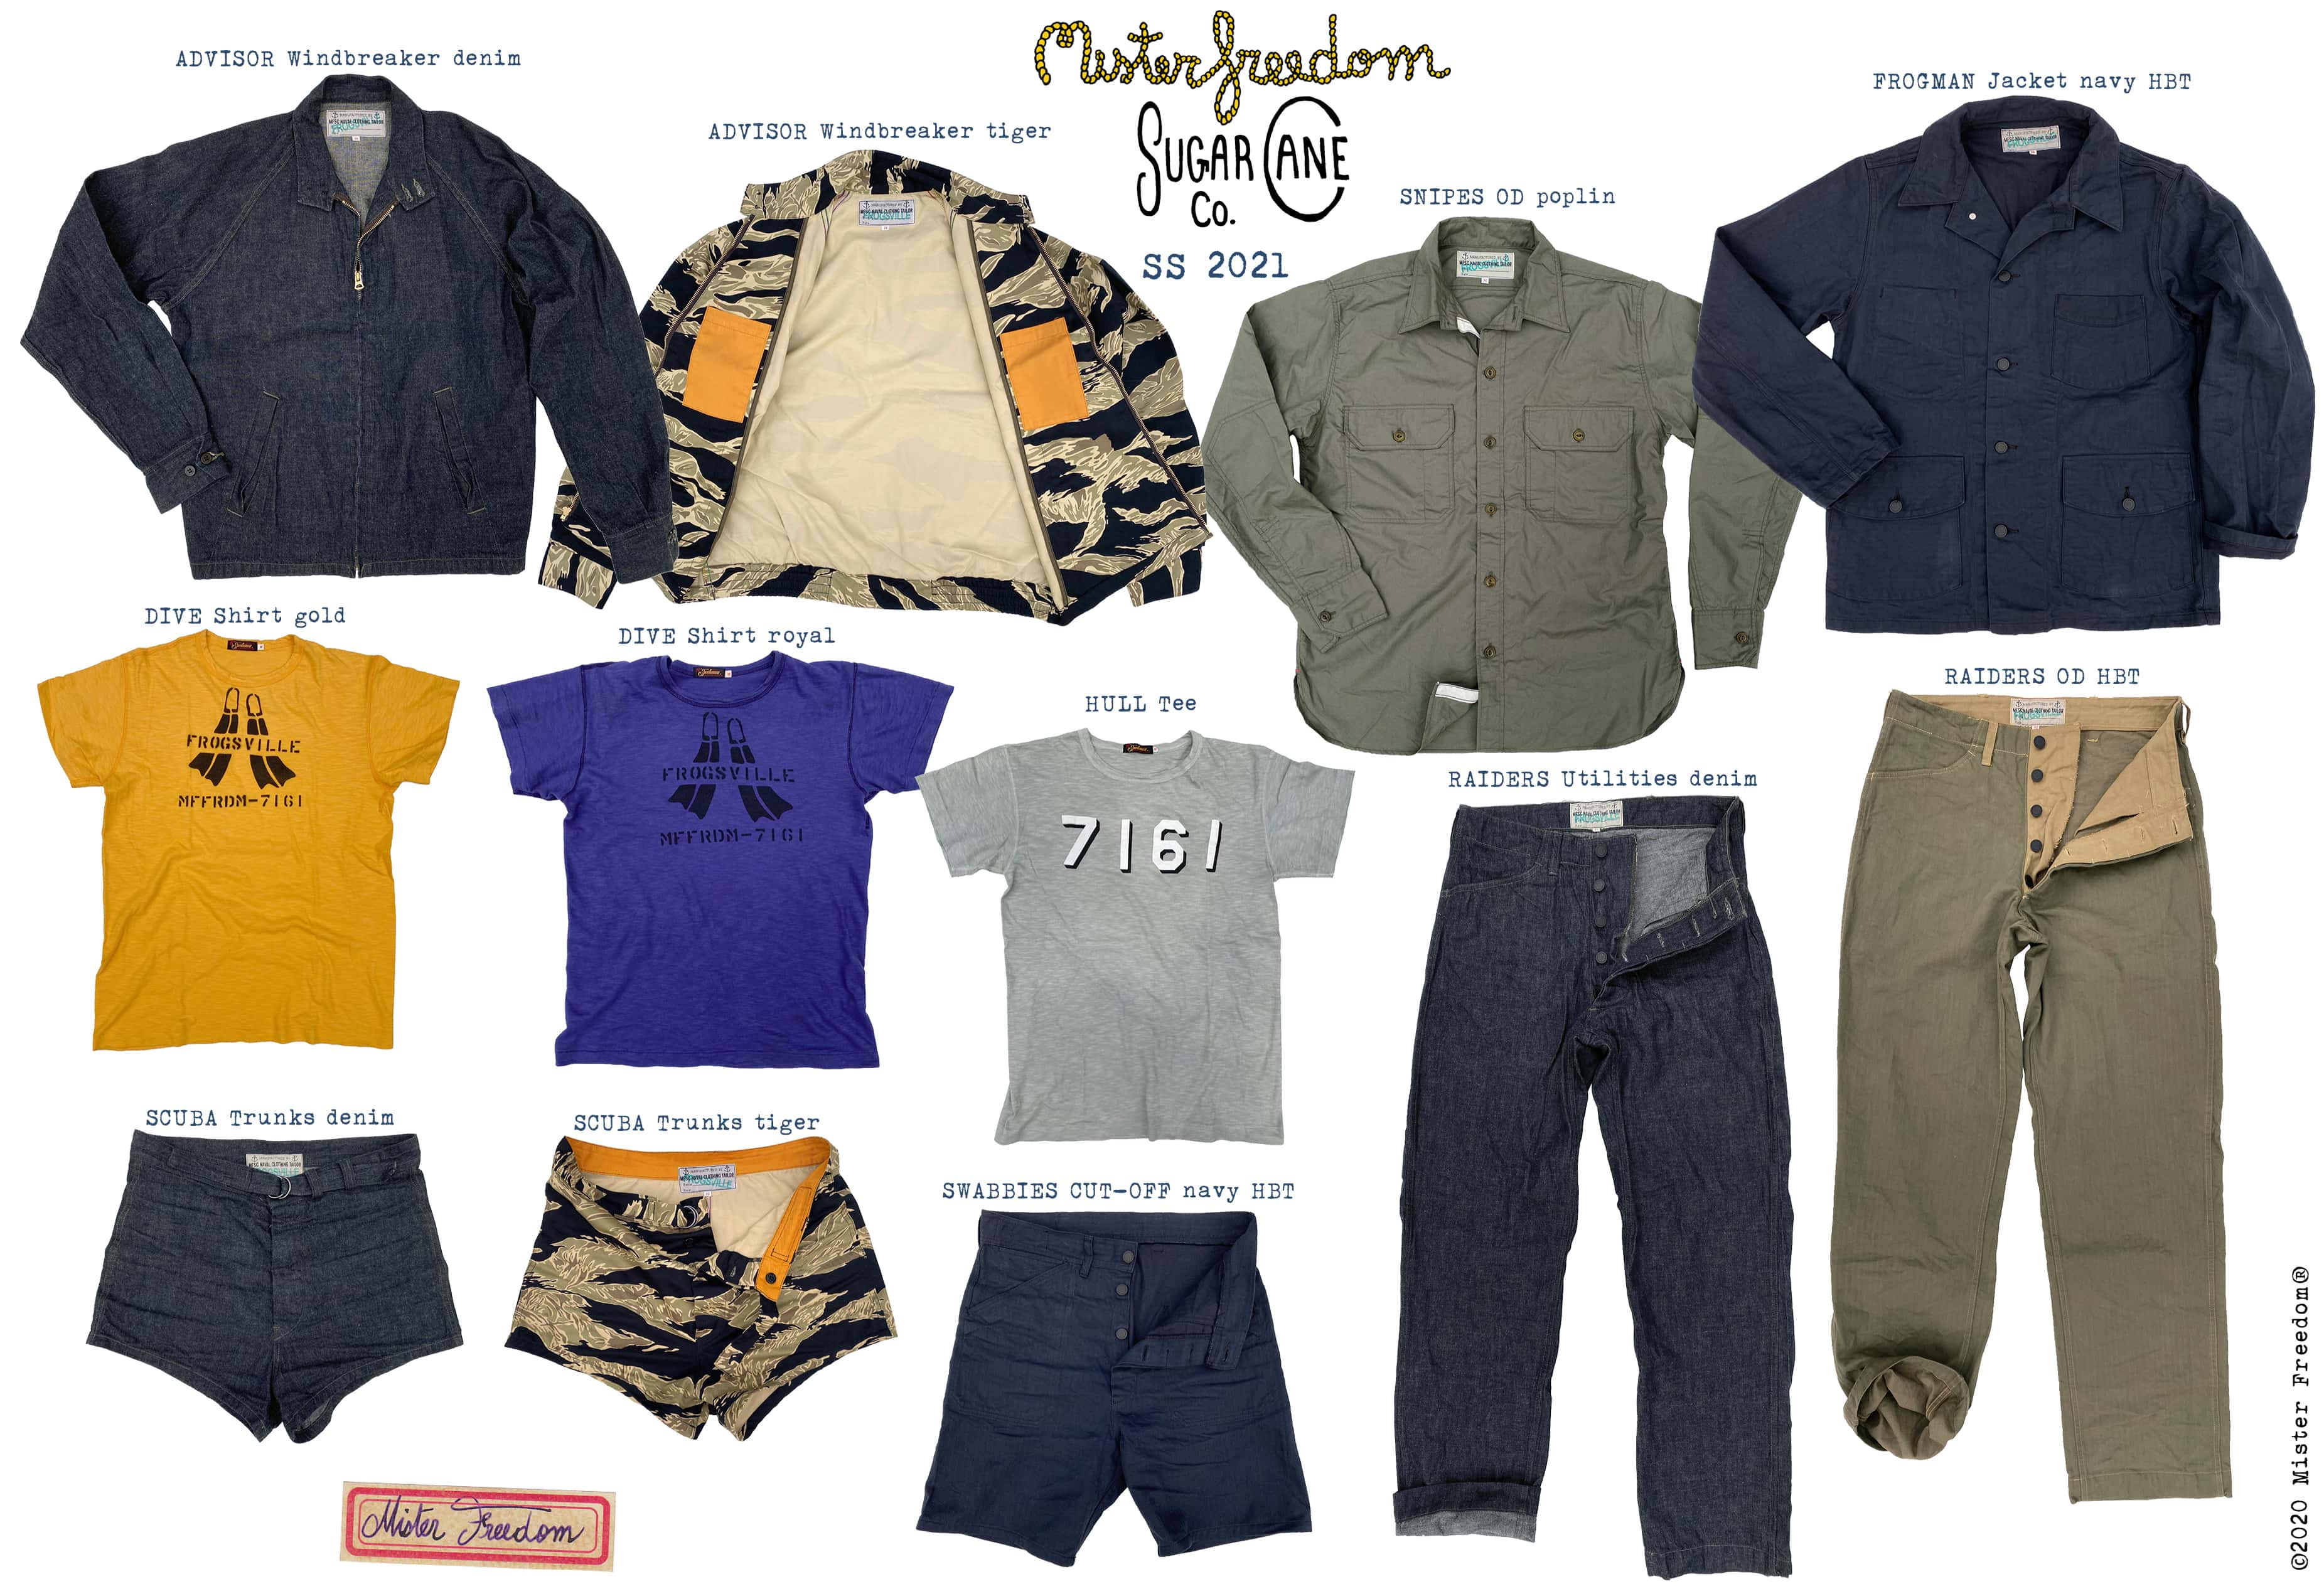 Mister Freedom®x Sugar Cane Co. SS21 Frogsville Collection